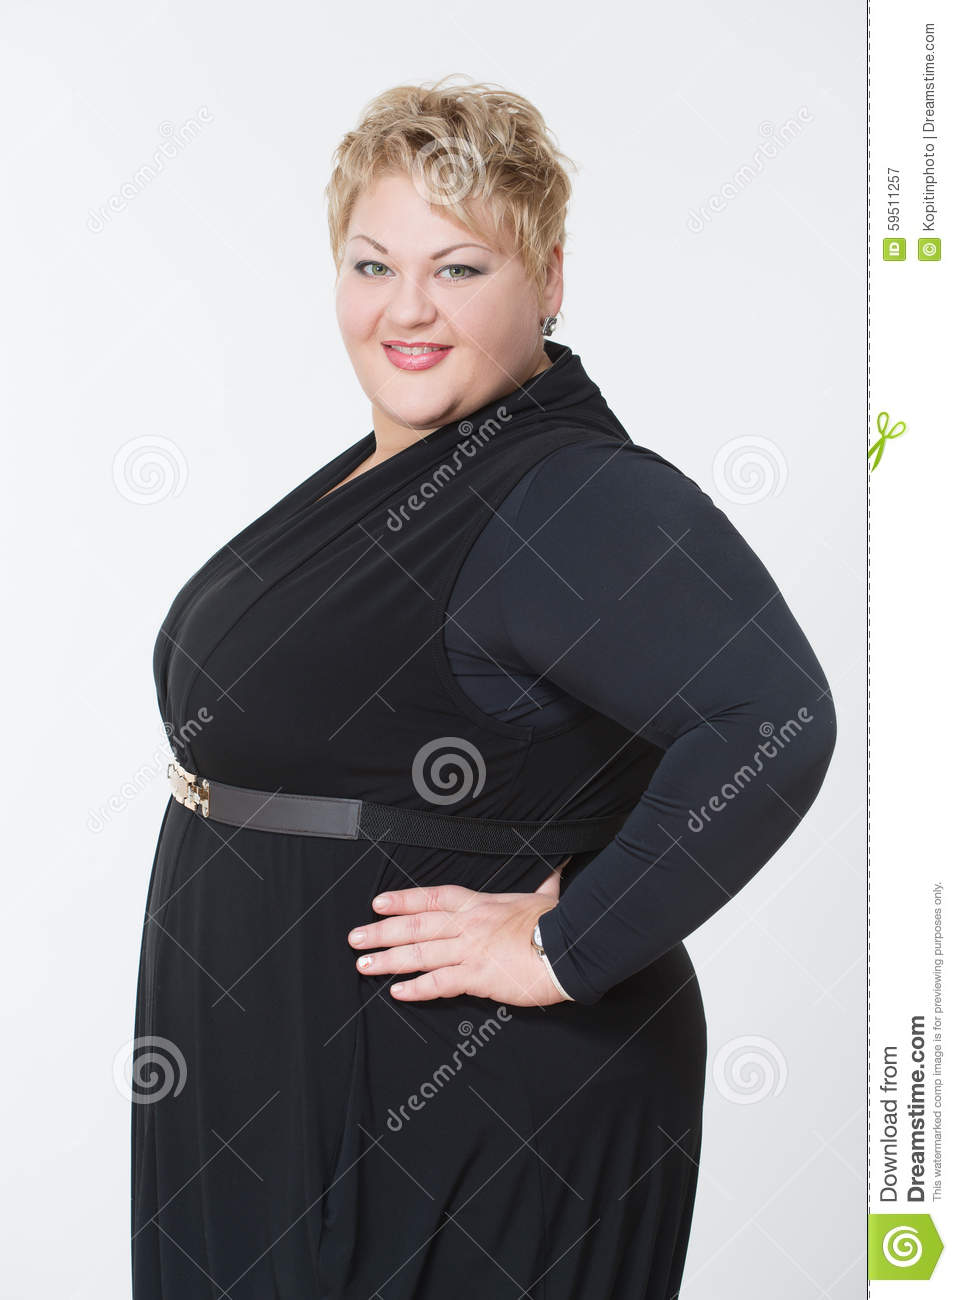 Fat Woman In A Beautiful Dress Stock Image - Image of ...